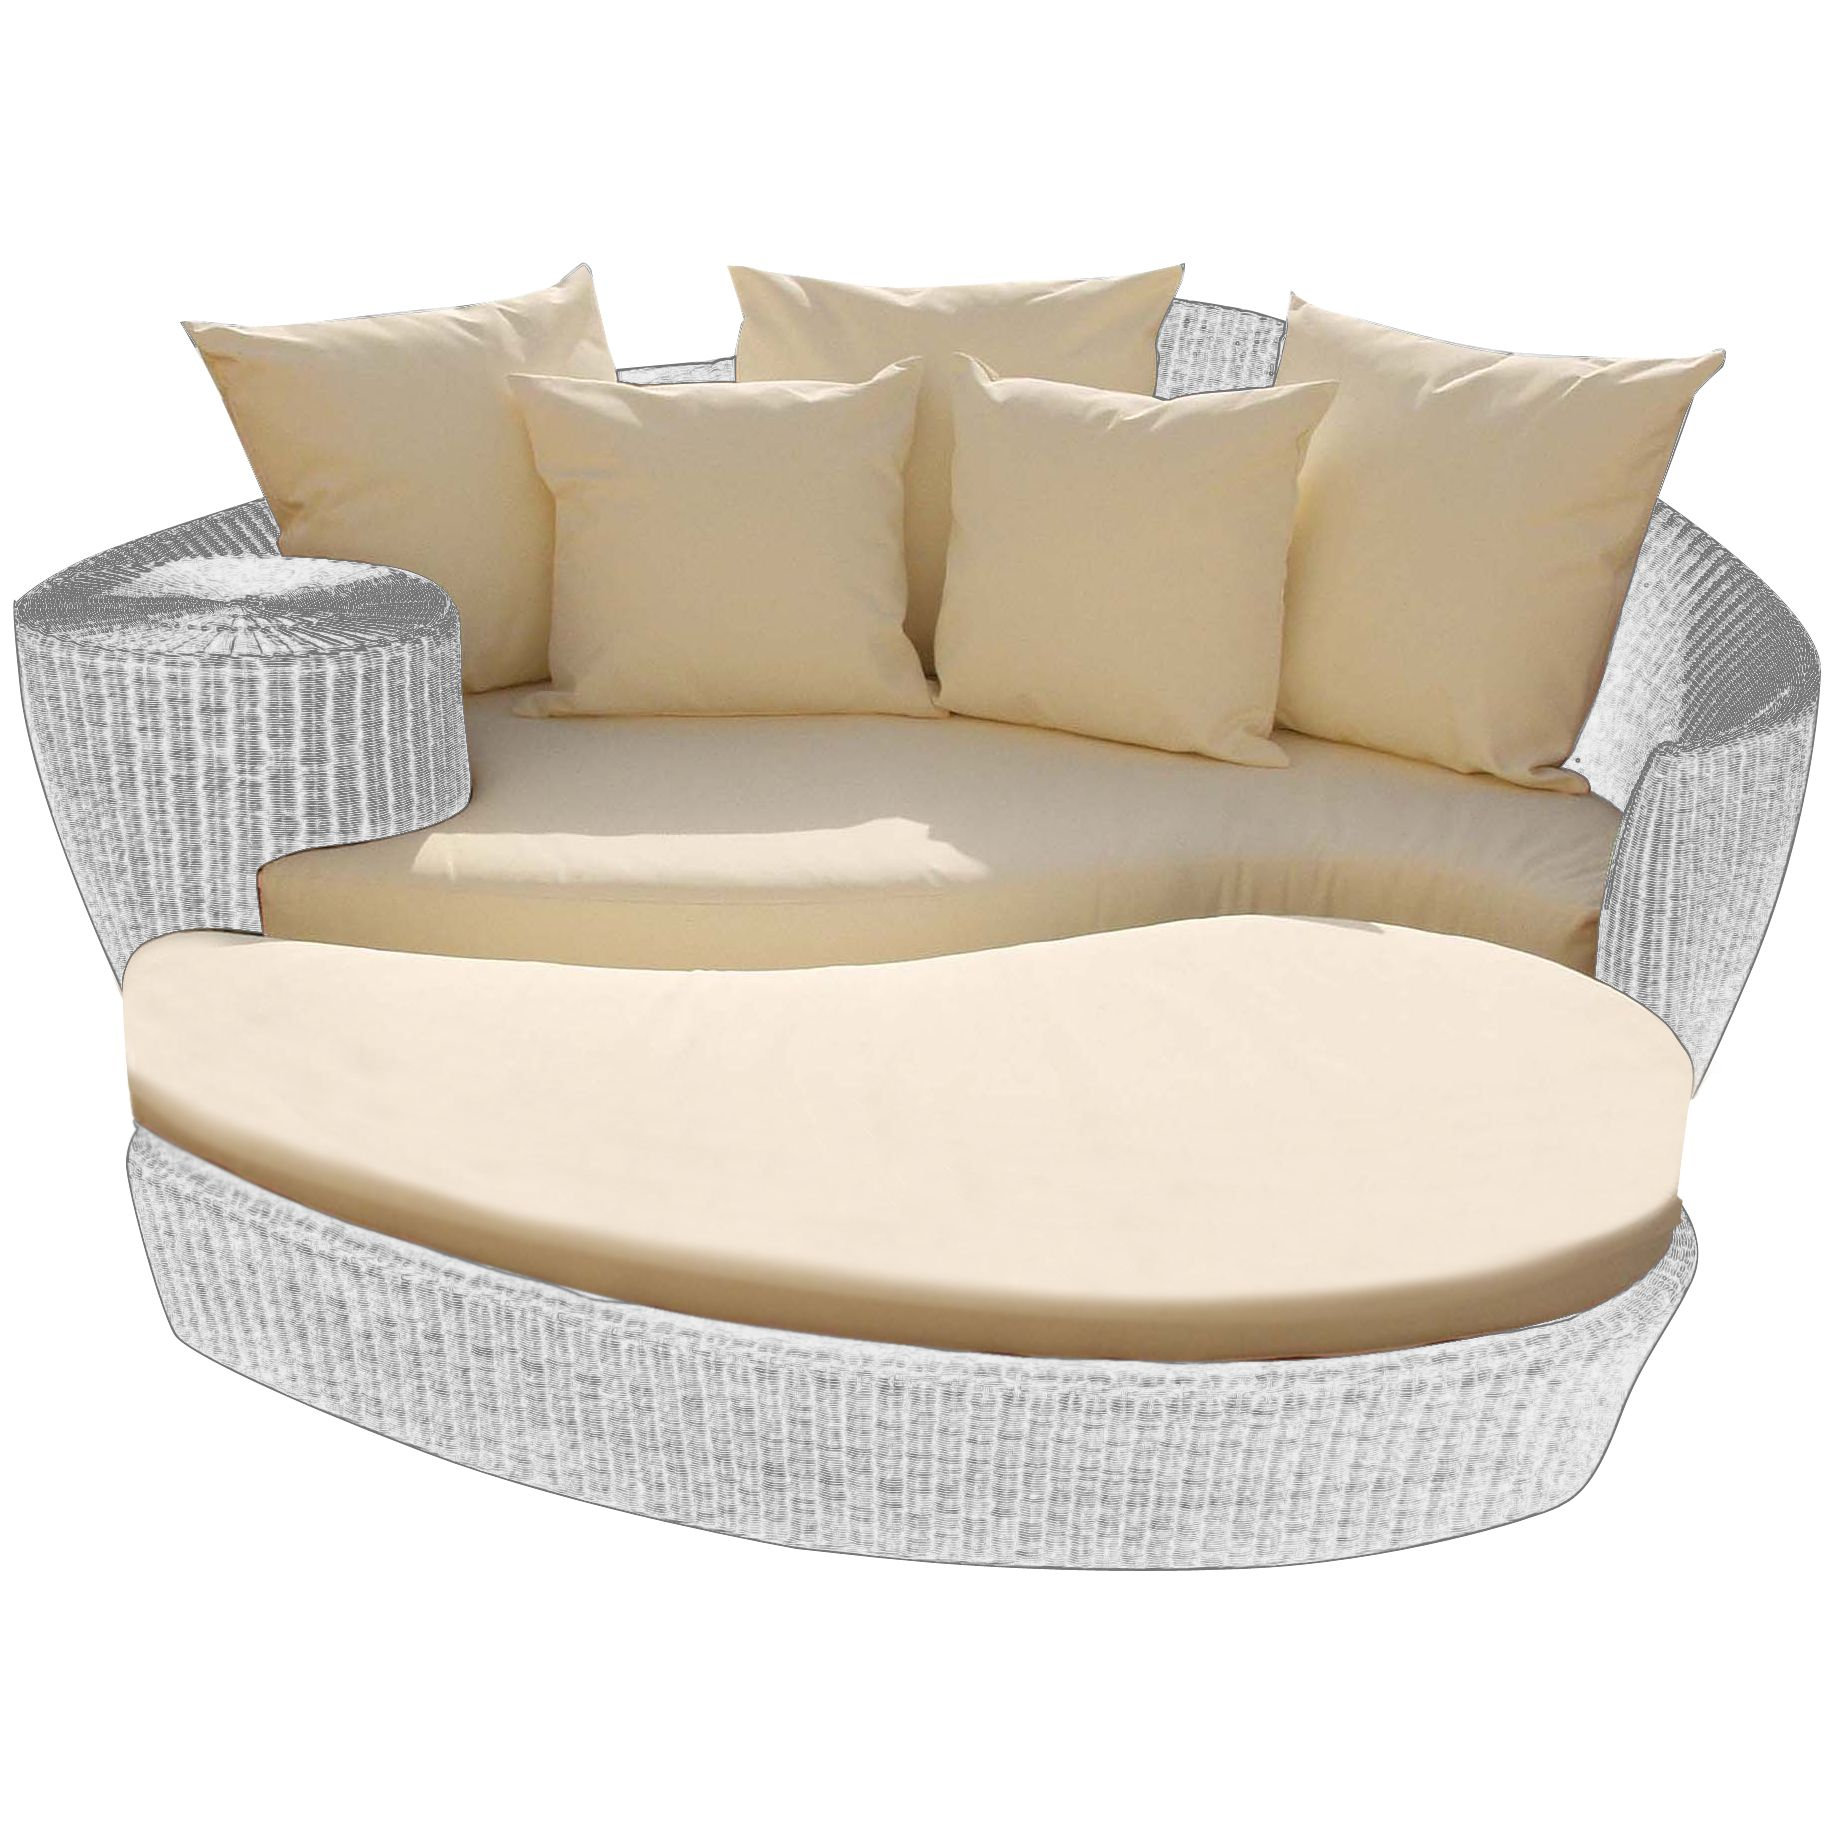 Barlow Tyrie Dune Day Bed Seat & Footstool Cushion Set, White Sand